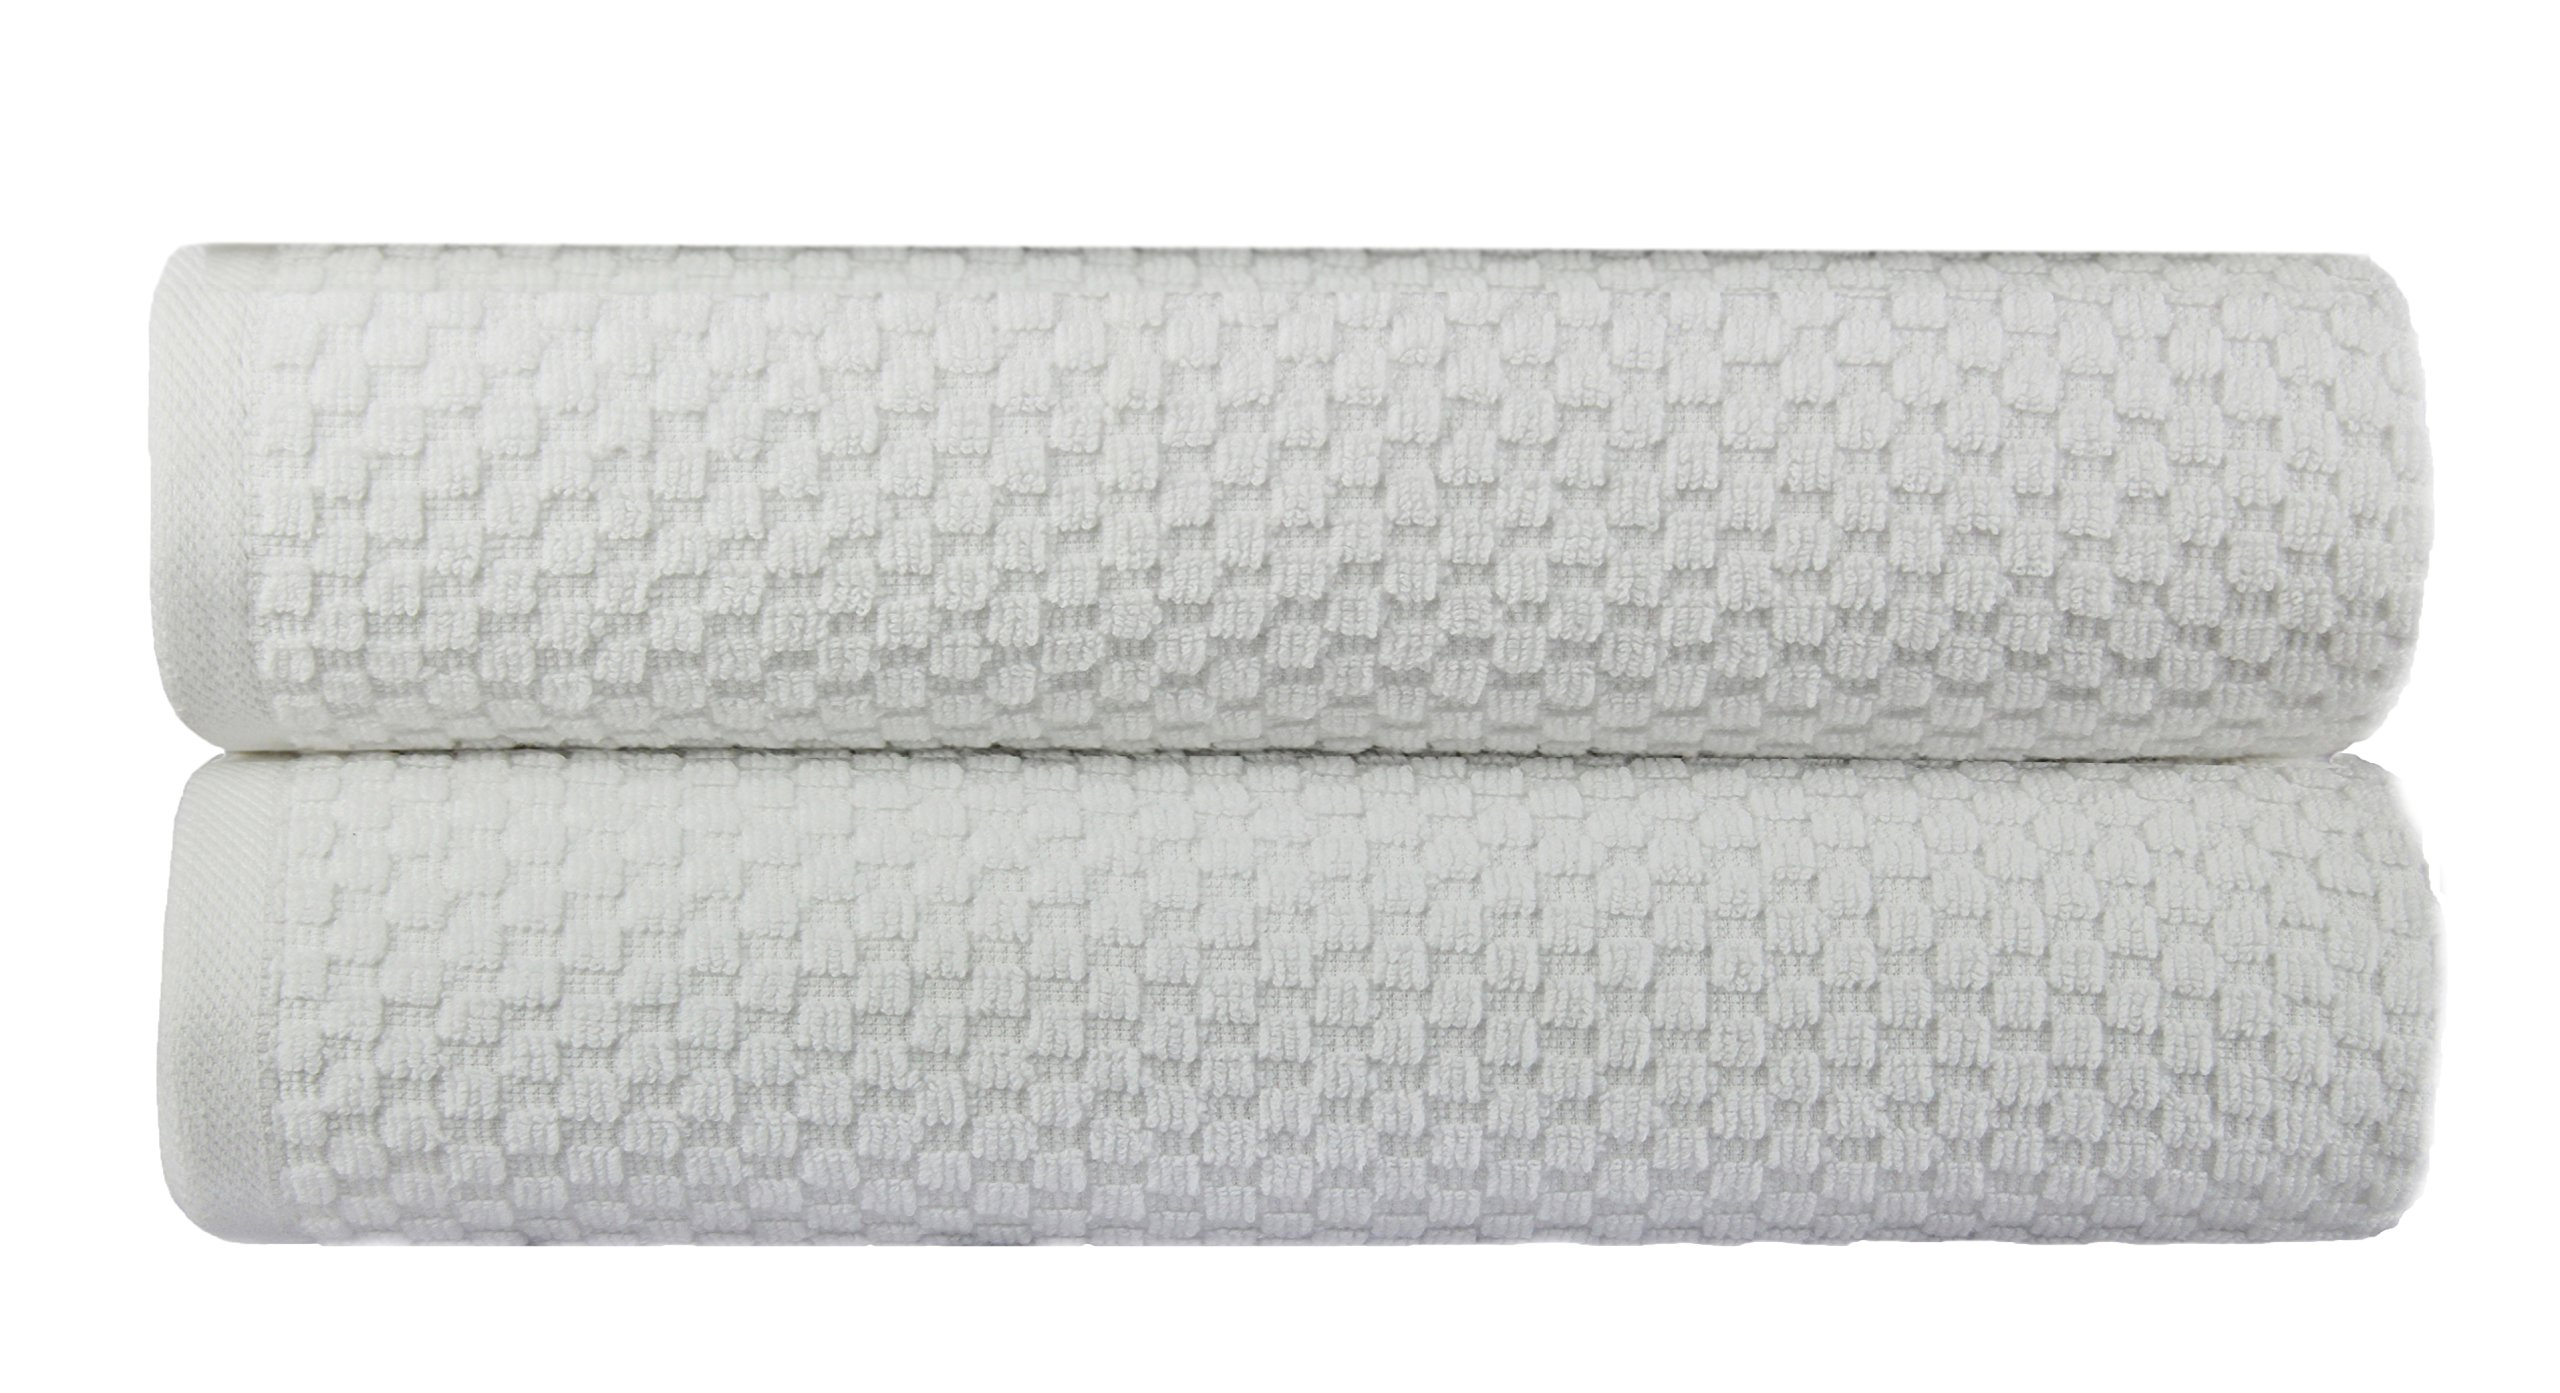 Cotton Craft 2 Pack Euro Spa Waffle Weave Oversized Bath Sheet 35x70 - White - 100% Pure Ringspun Combed Cotton - True Luxury Inspired by the Finest European Spas and Resorts